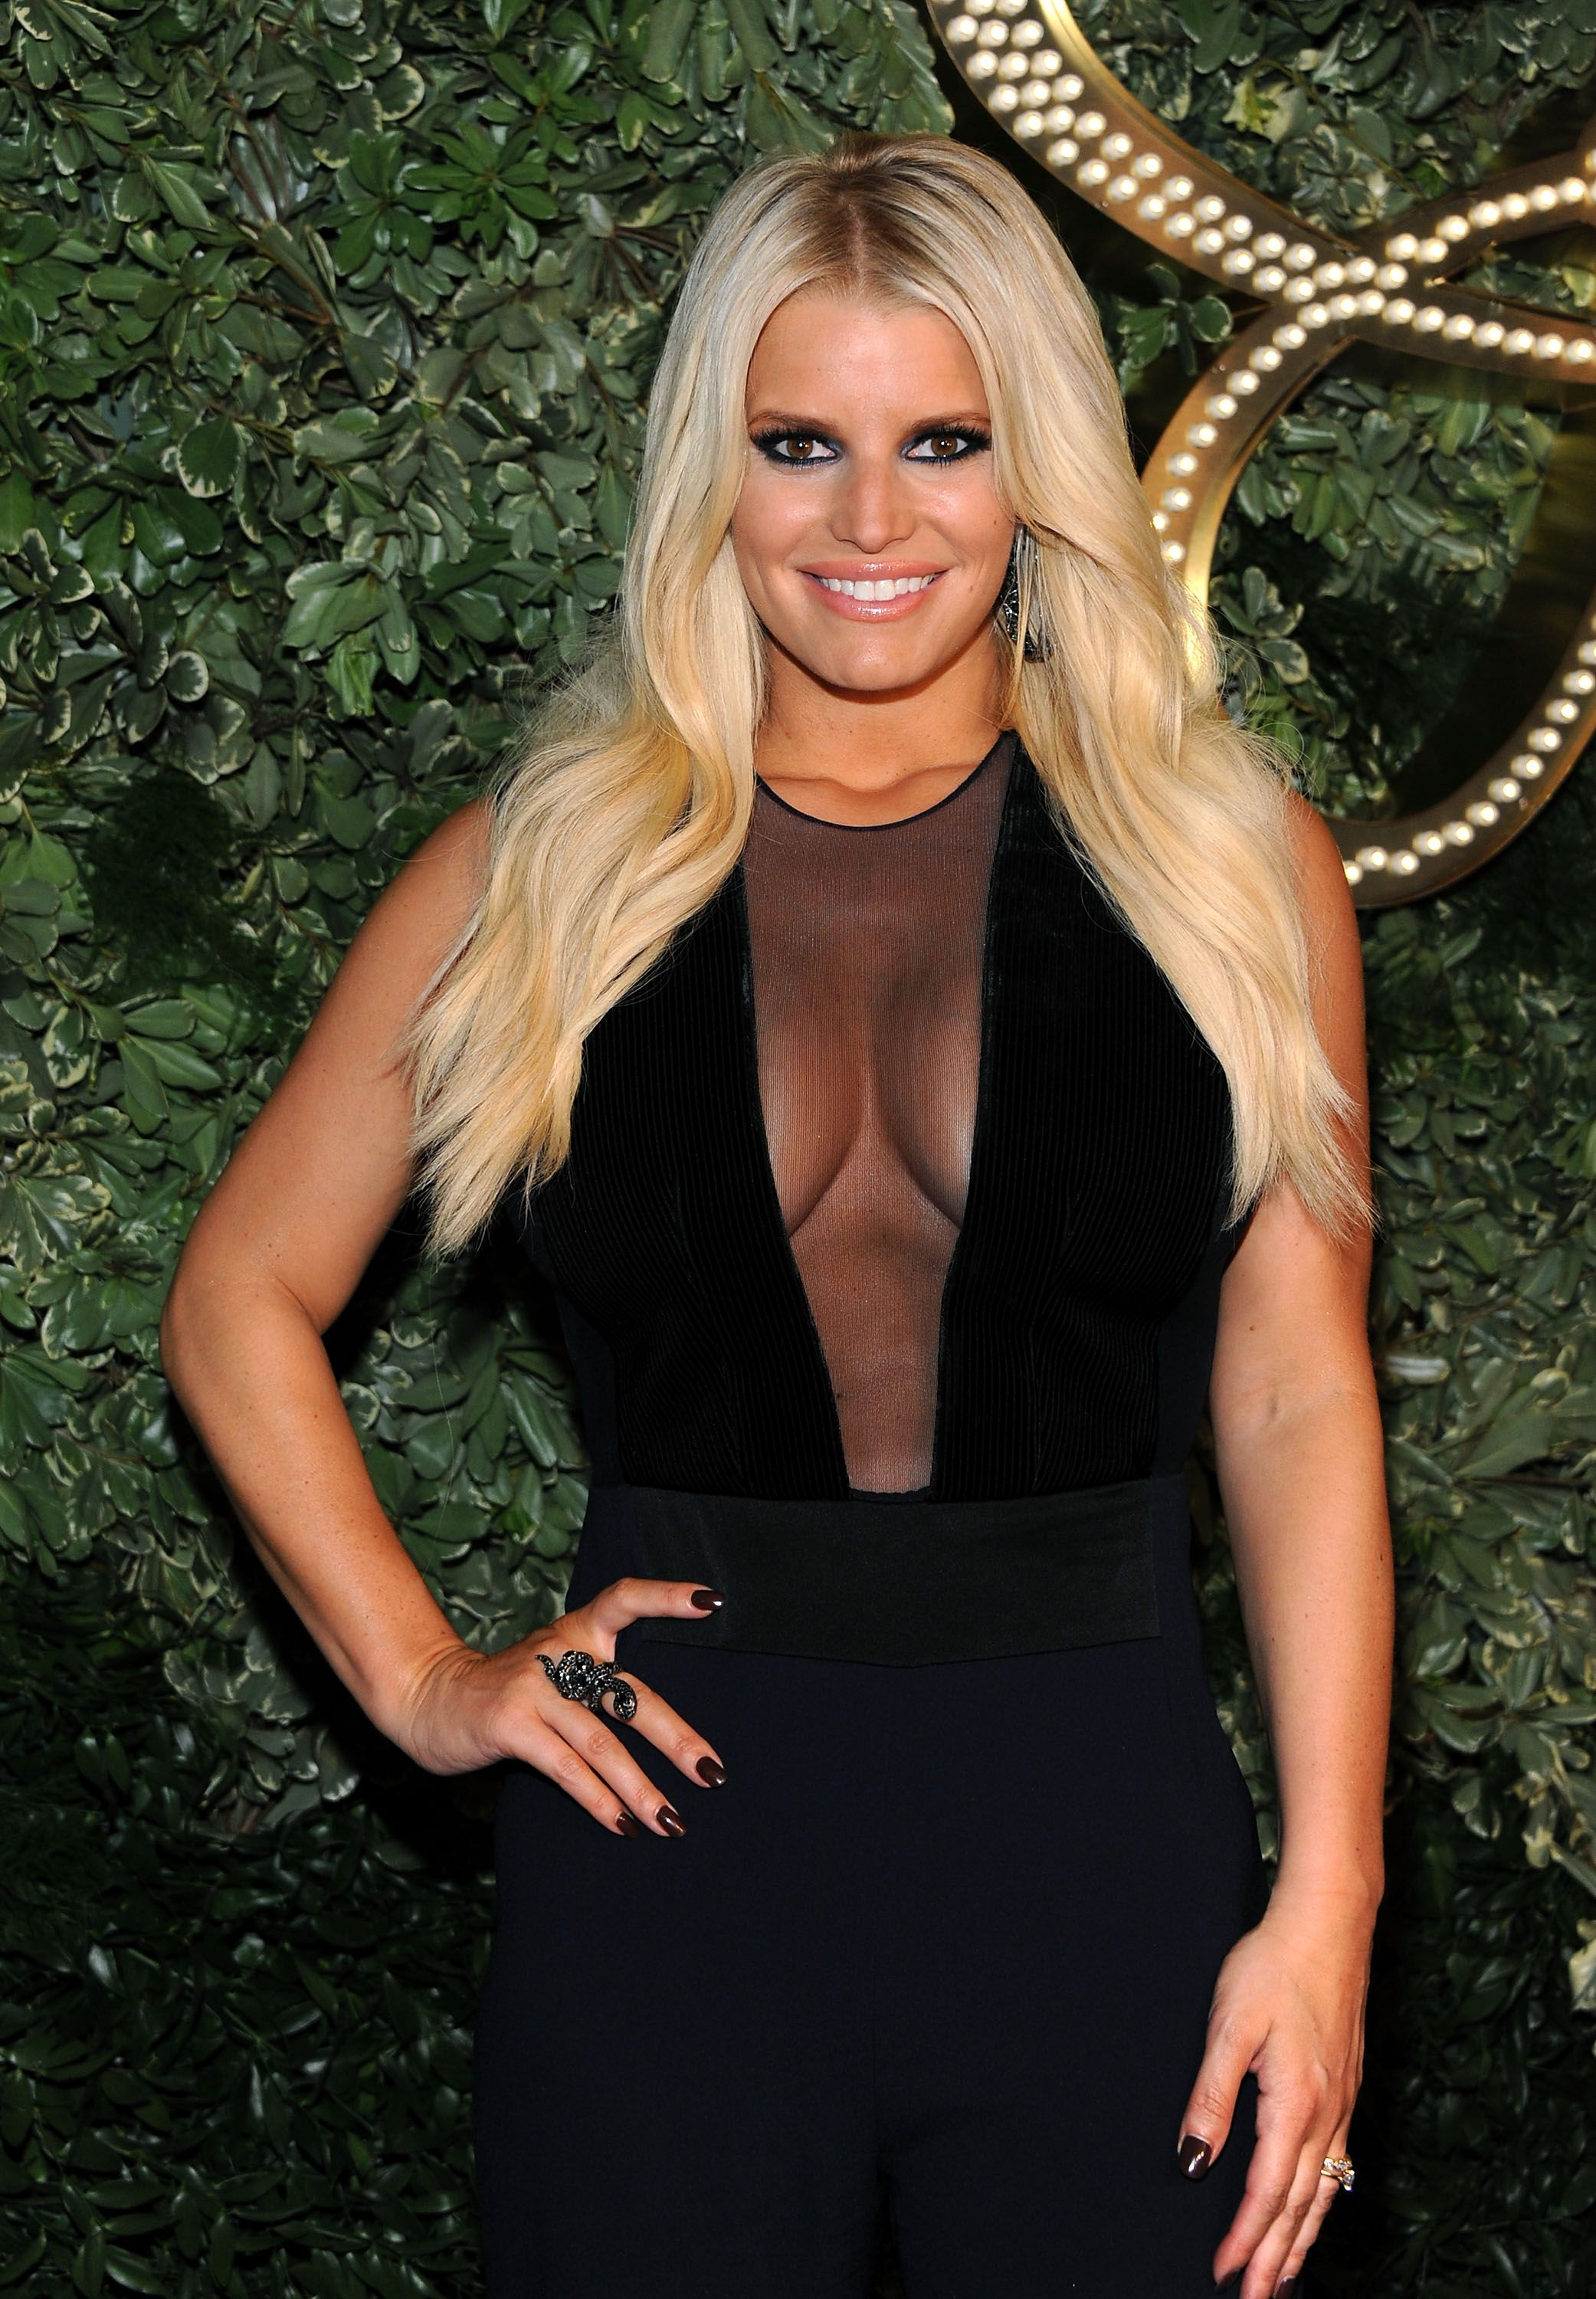 Jessica Simpson Revealed She Hasn't Had A Drink Since She Got Sober In 2017